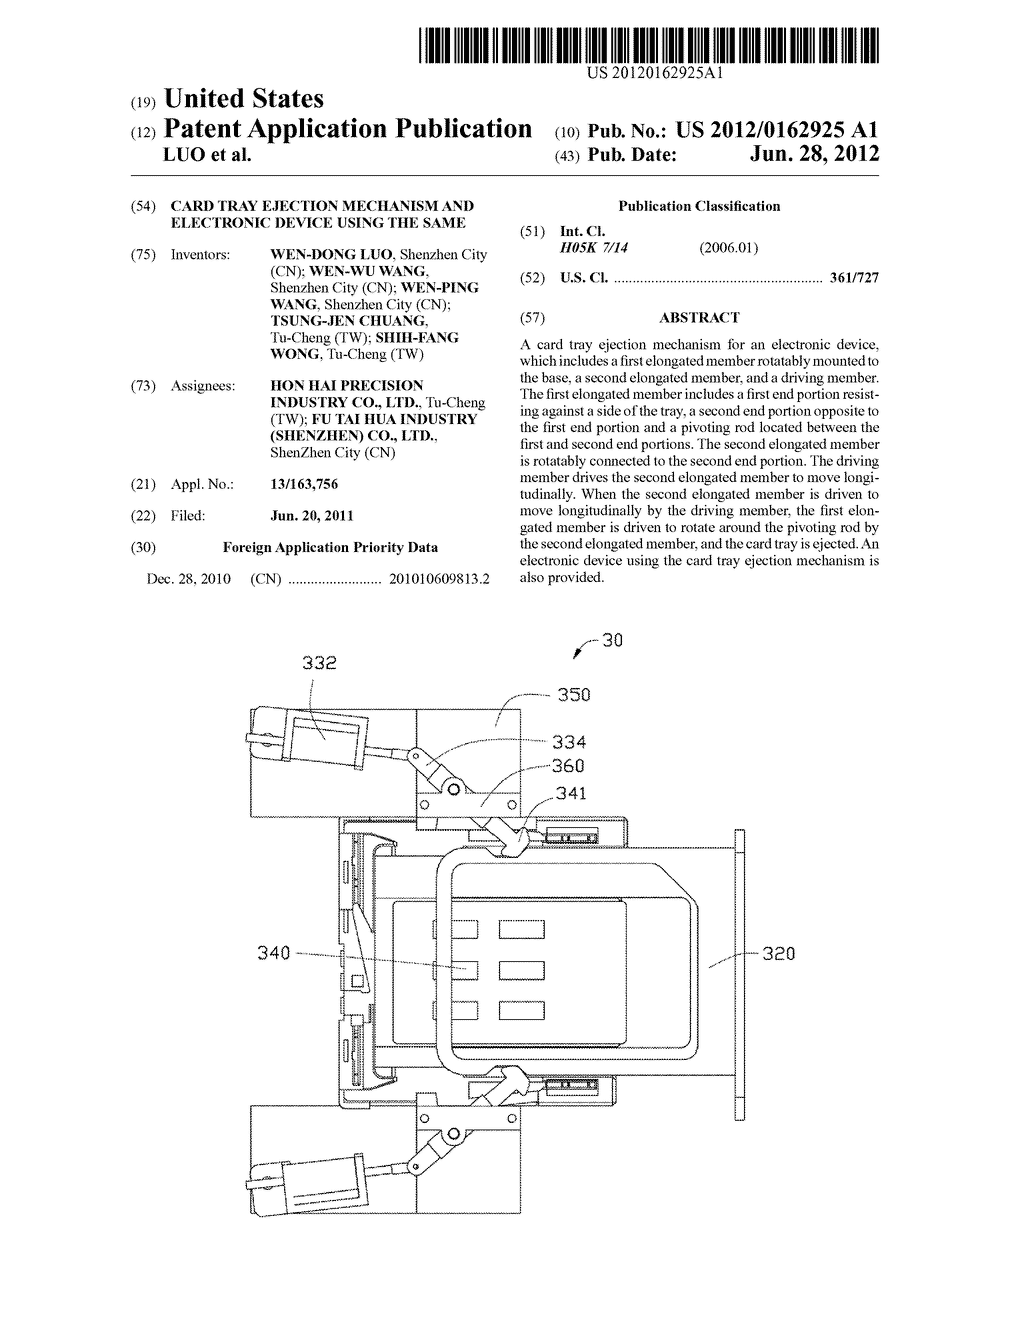 CARD TRAY EJECTION MECHANISM AND ELECTRONIC DEVICE USING THE SAME - diagram, schematic, and image 01